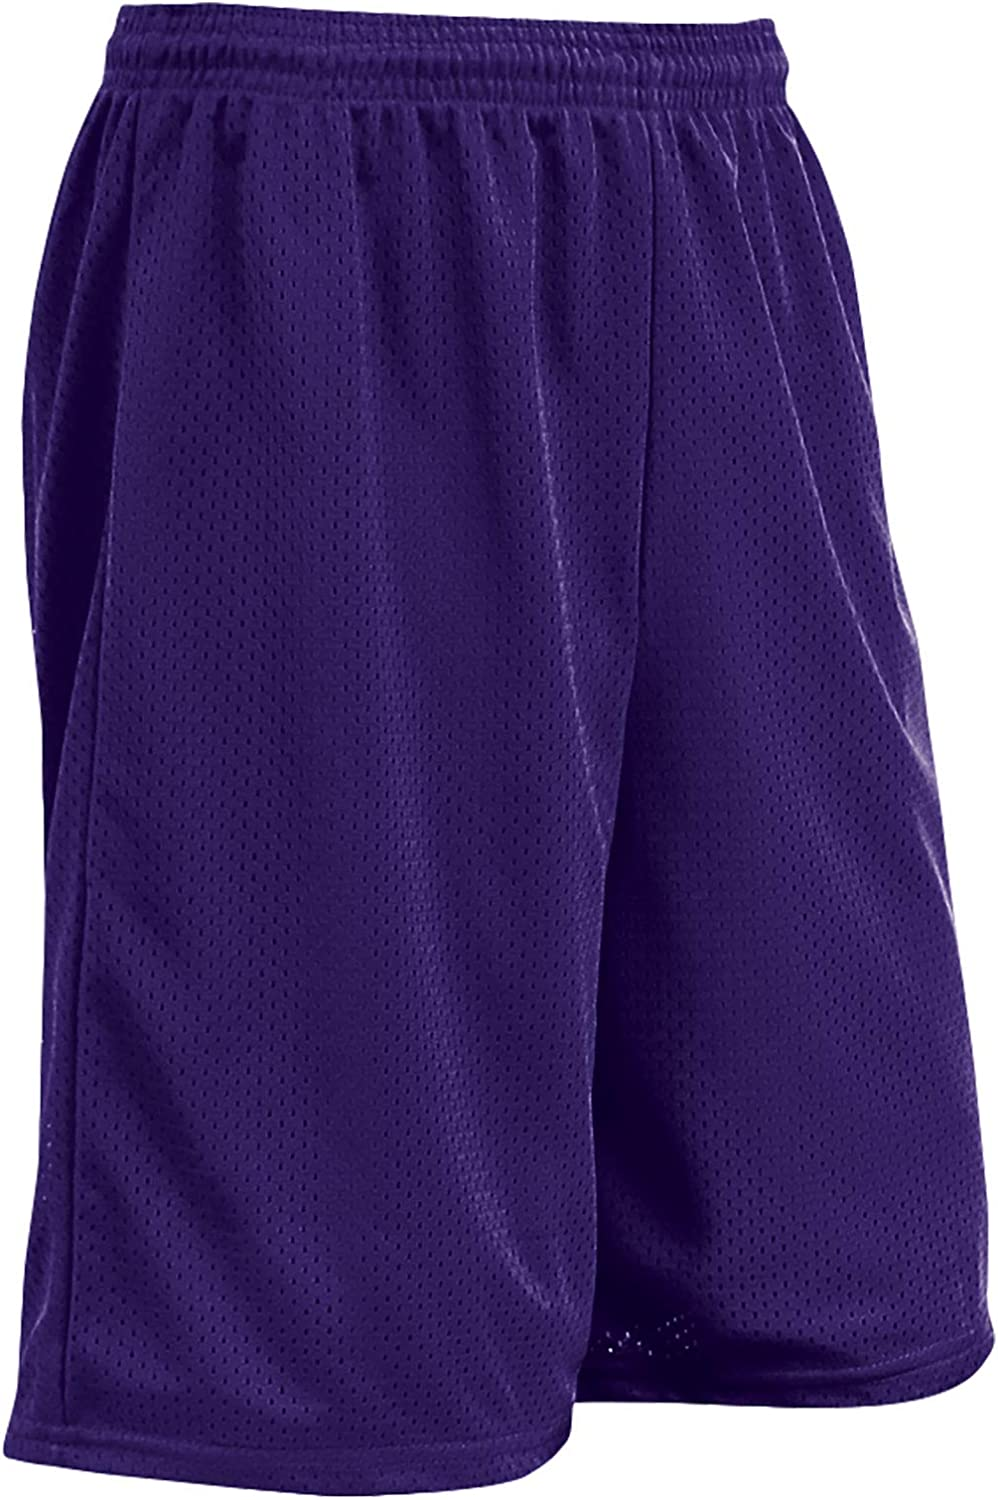 CHAMPRO Polyester Tricot Short with Liner